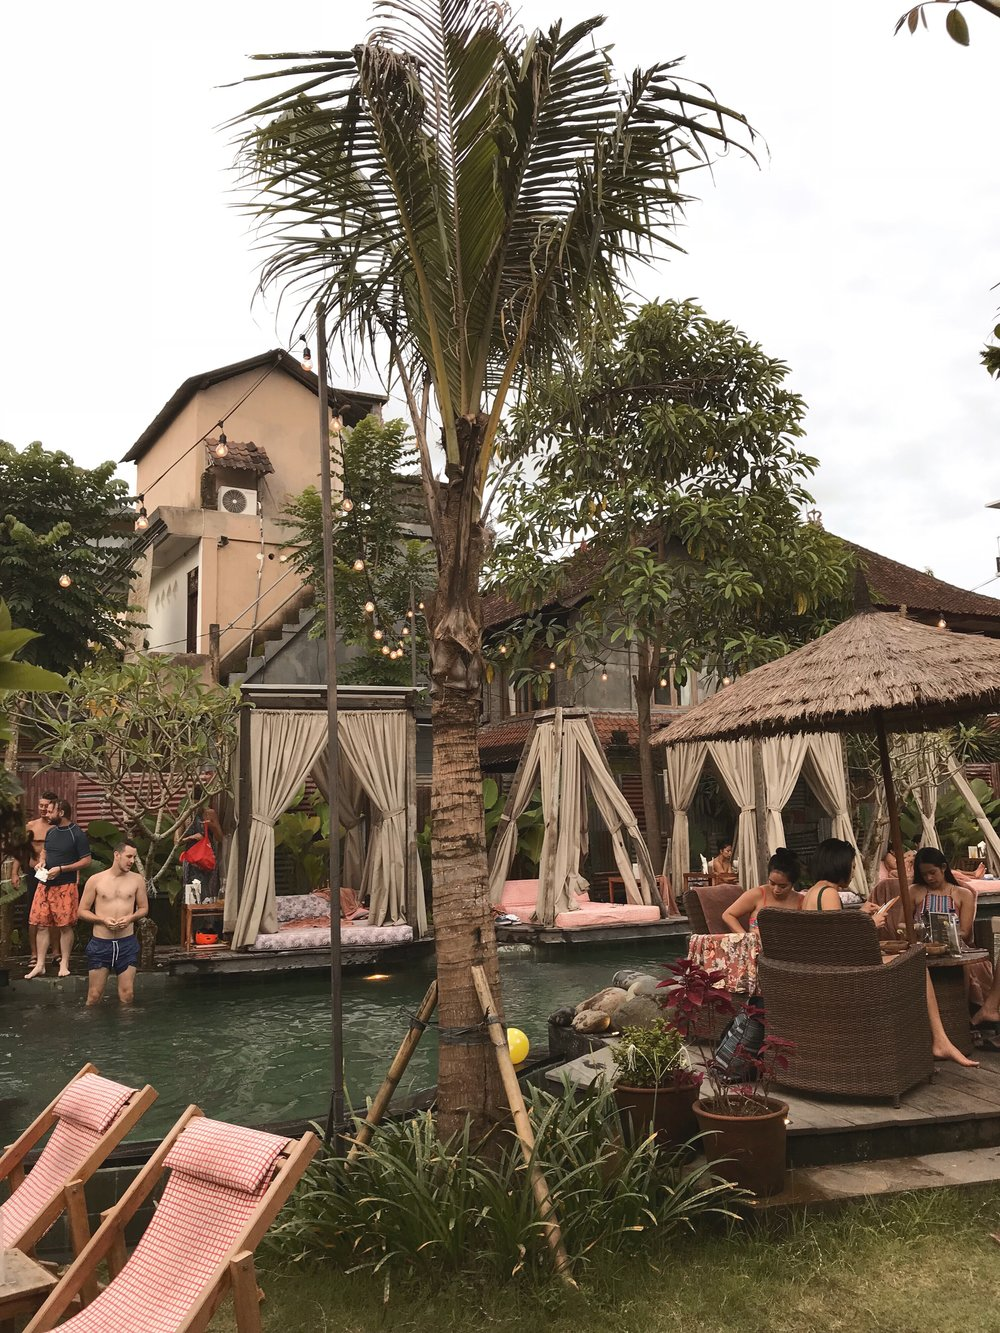 Where to find Folk Pool & Gardens - Jl Monkey Forest, Ubud, Bali, 80571